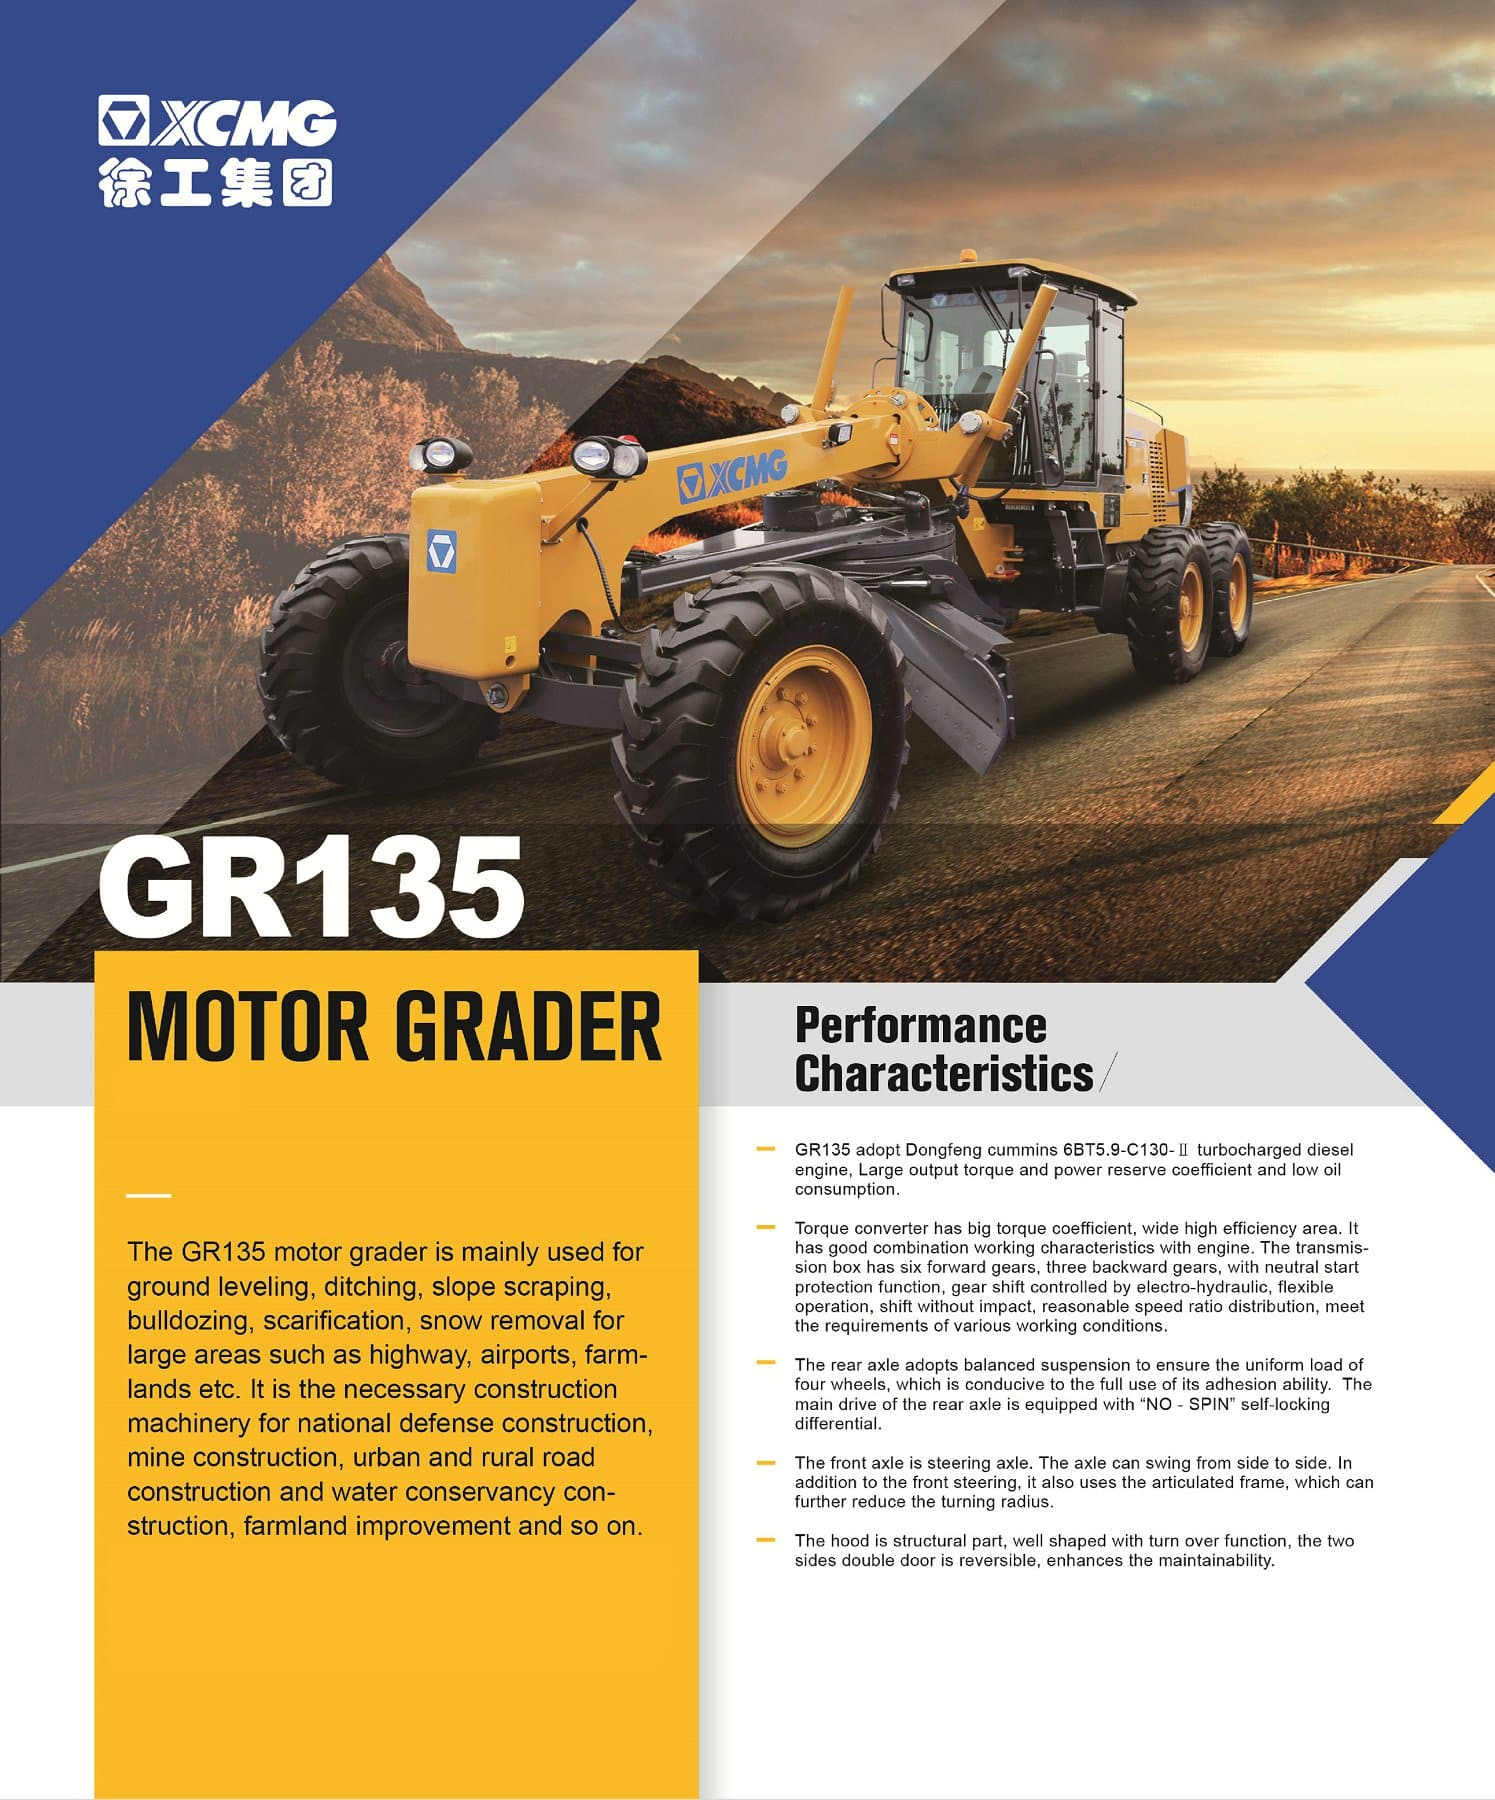 XCMG Official Motor Grader GR135 For Sale